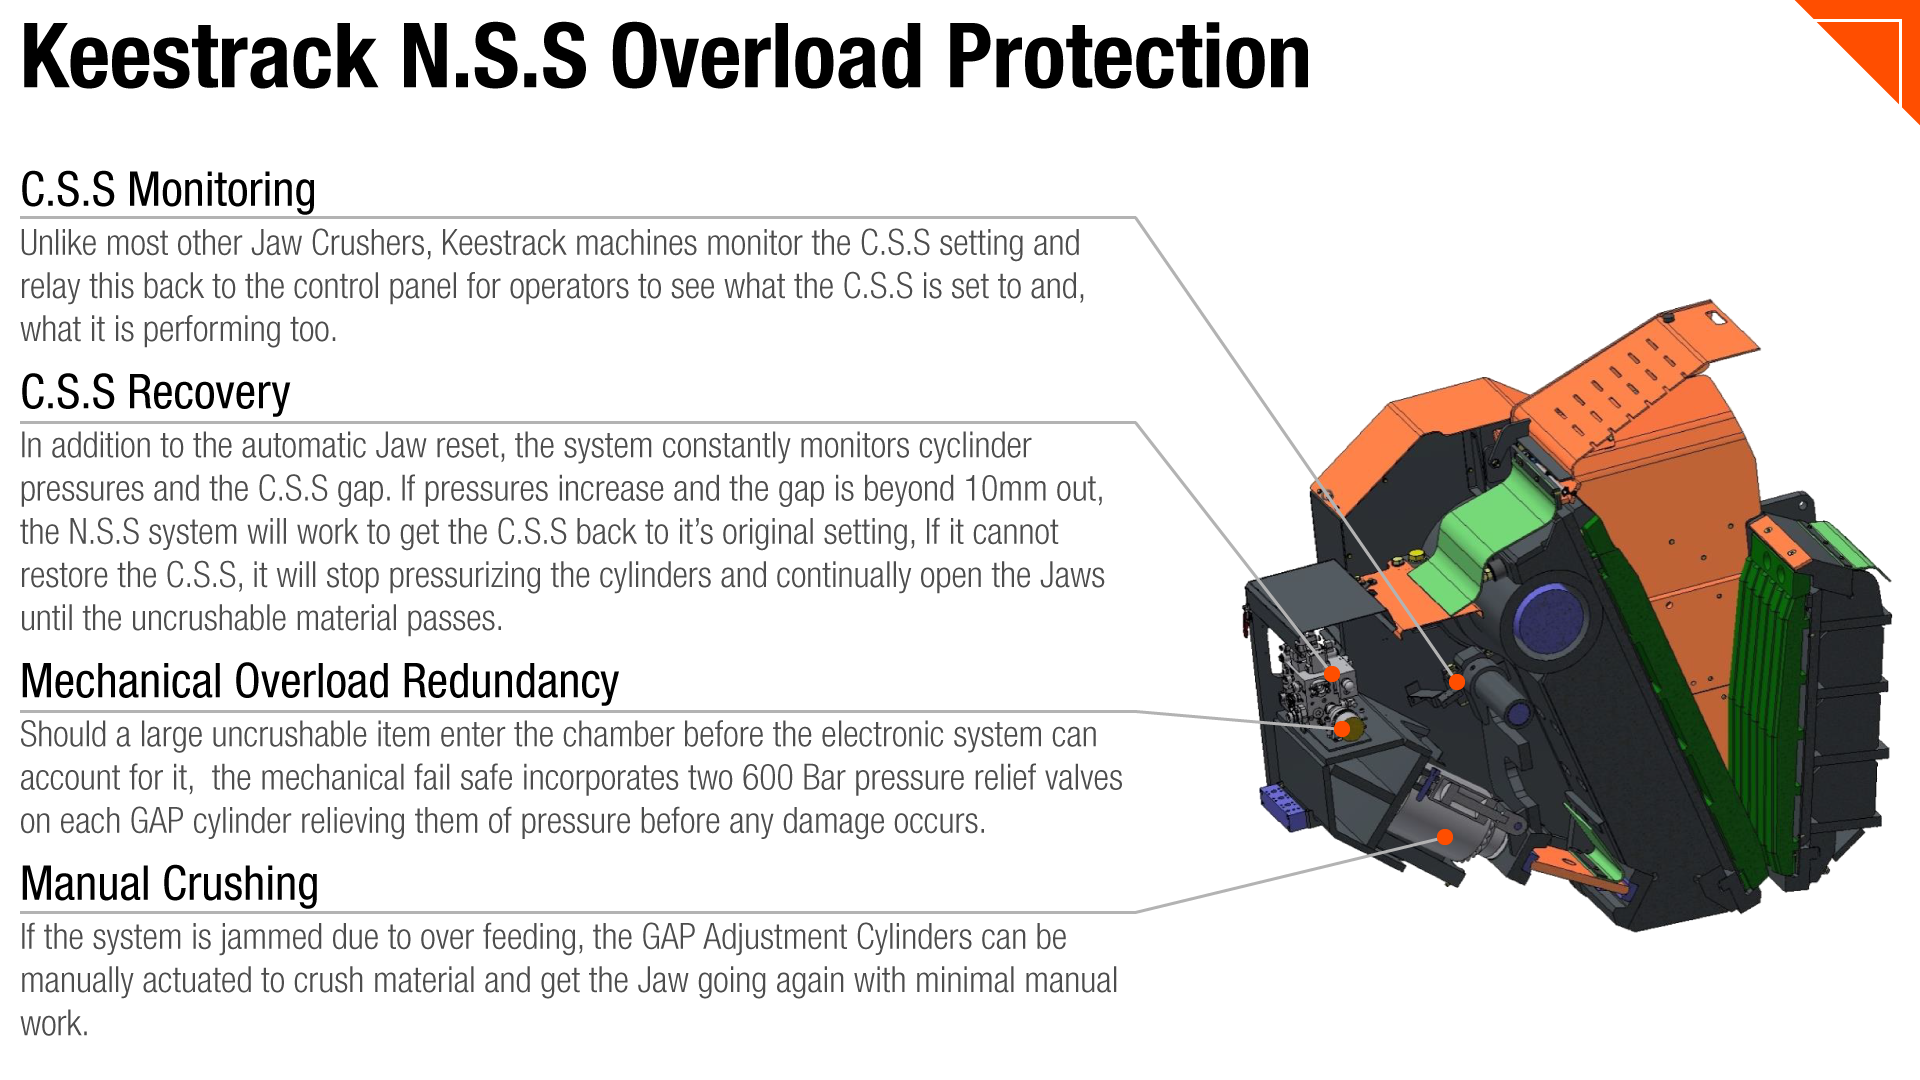 Non Stop System - Keestrack Jaw Overload Protection System